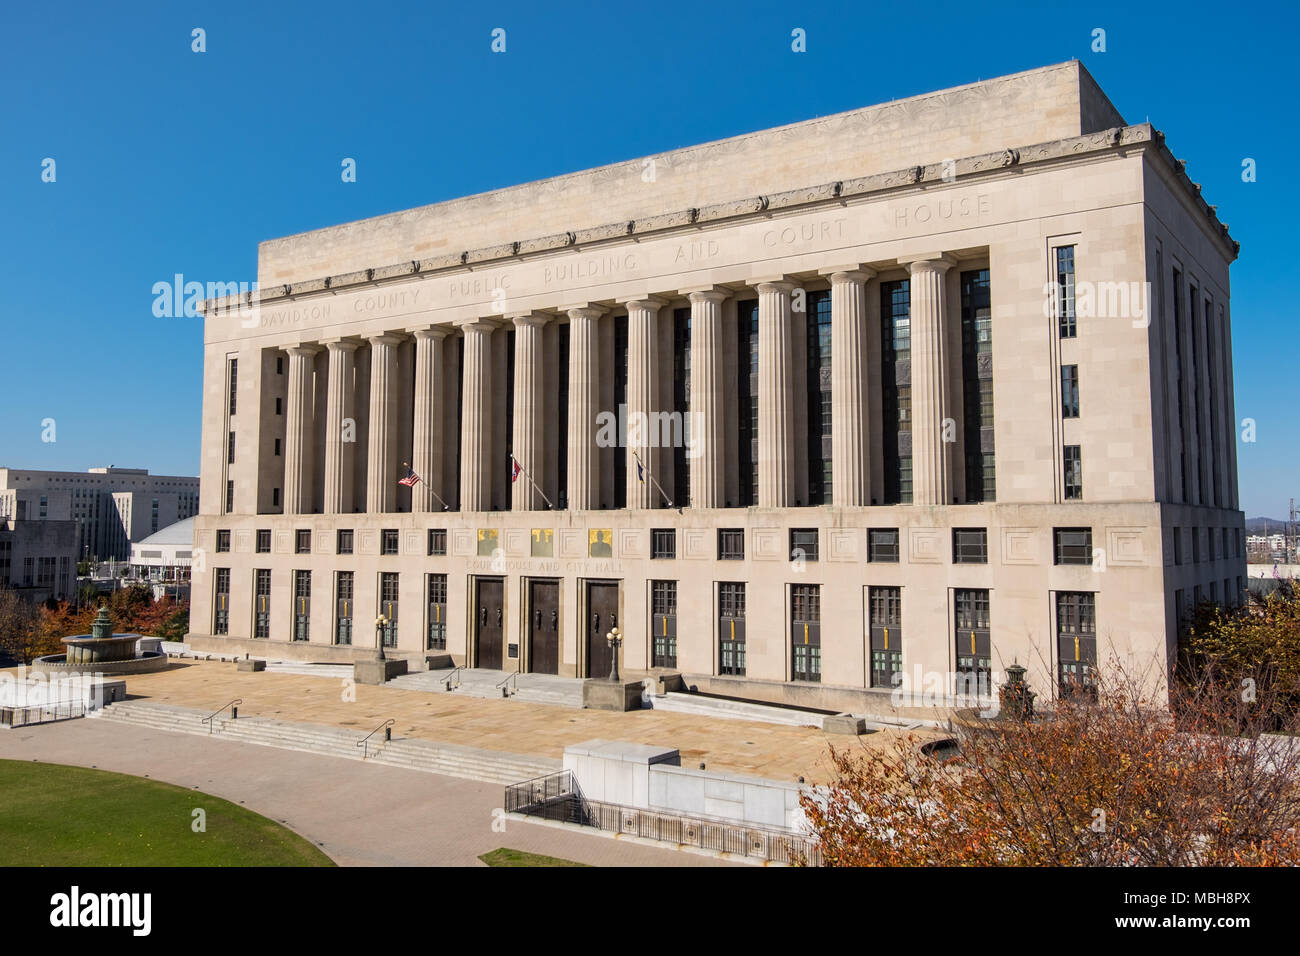 Davidson County Public Building and Court House in Nashville,Tennessee, USA. - Stock Image